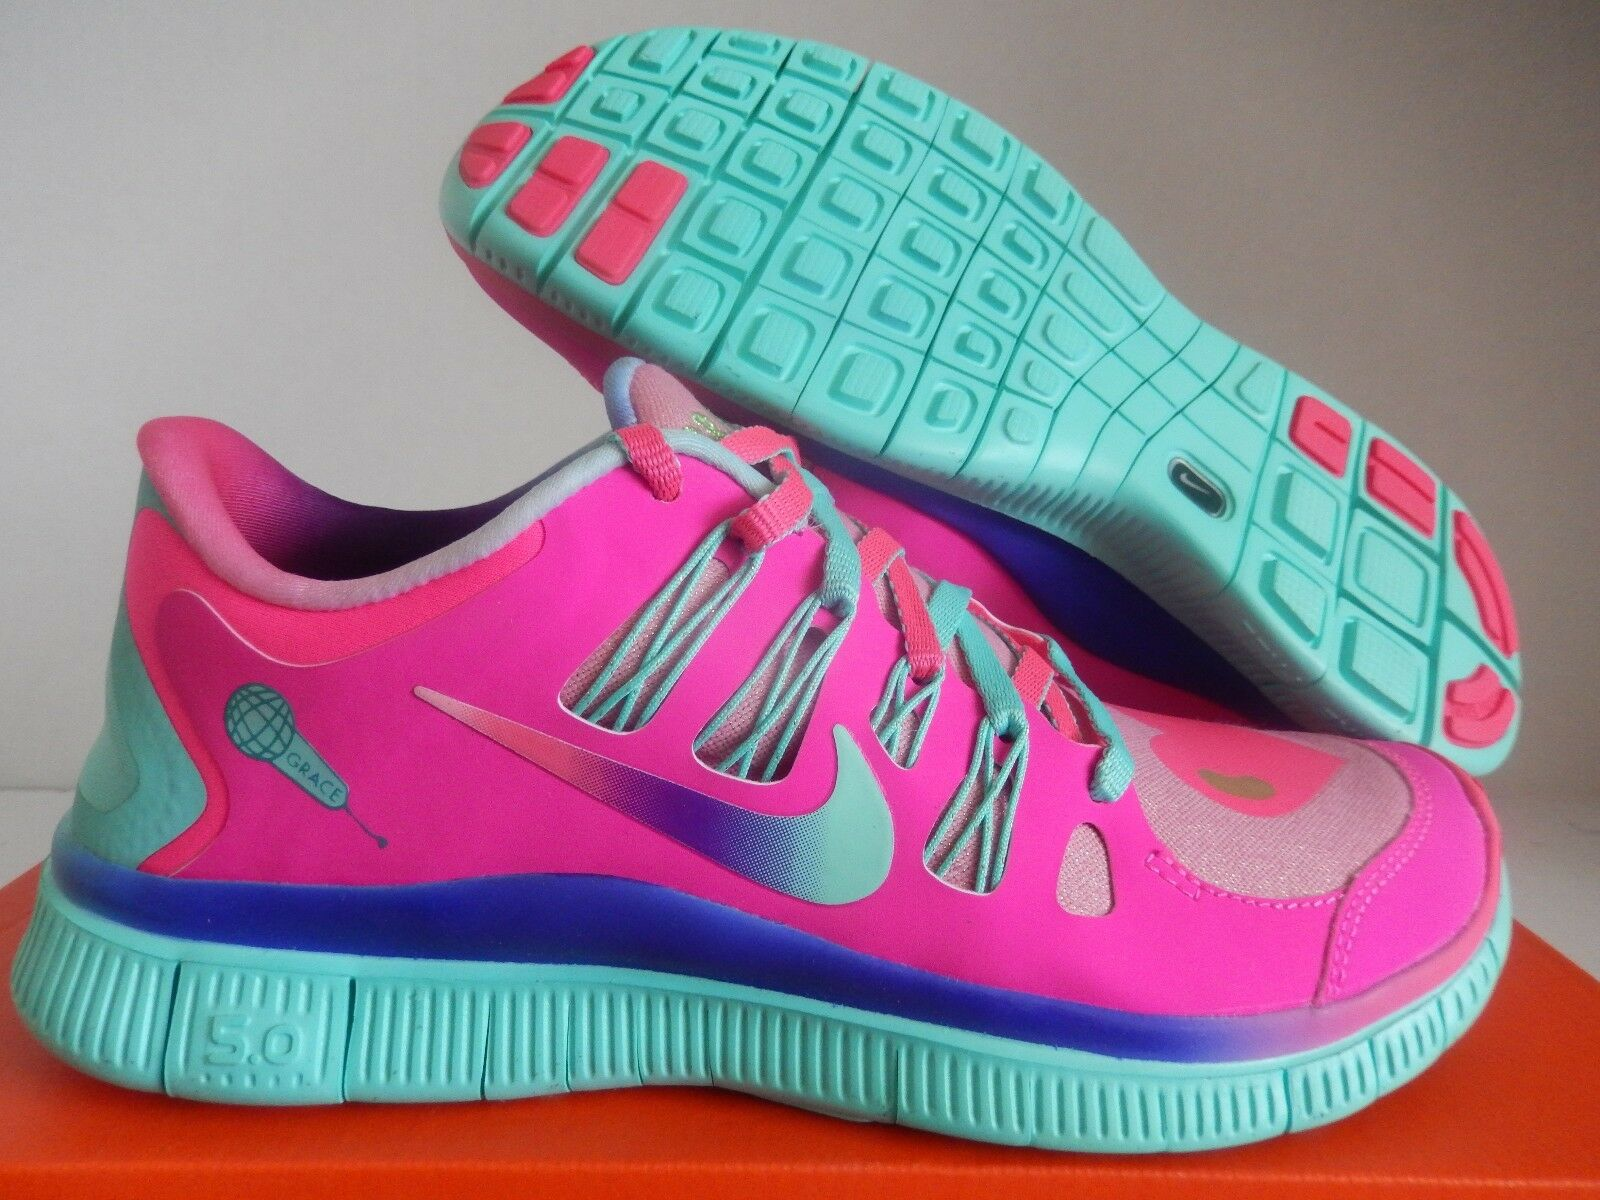 NIKE FREE 5.0 DB DOERNBECHER HYPER PINK-TURQUOISE-gold SZ 8